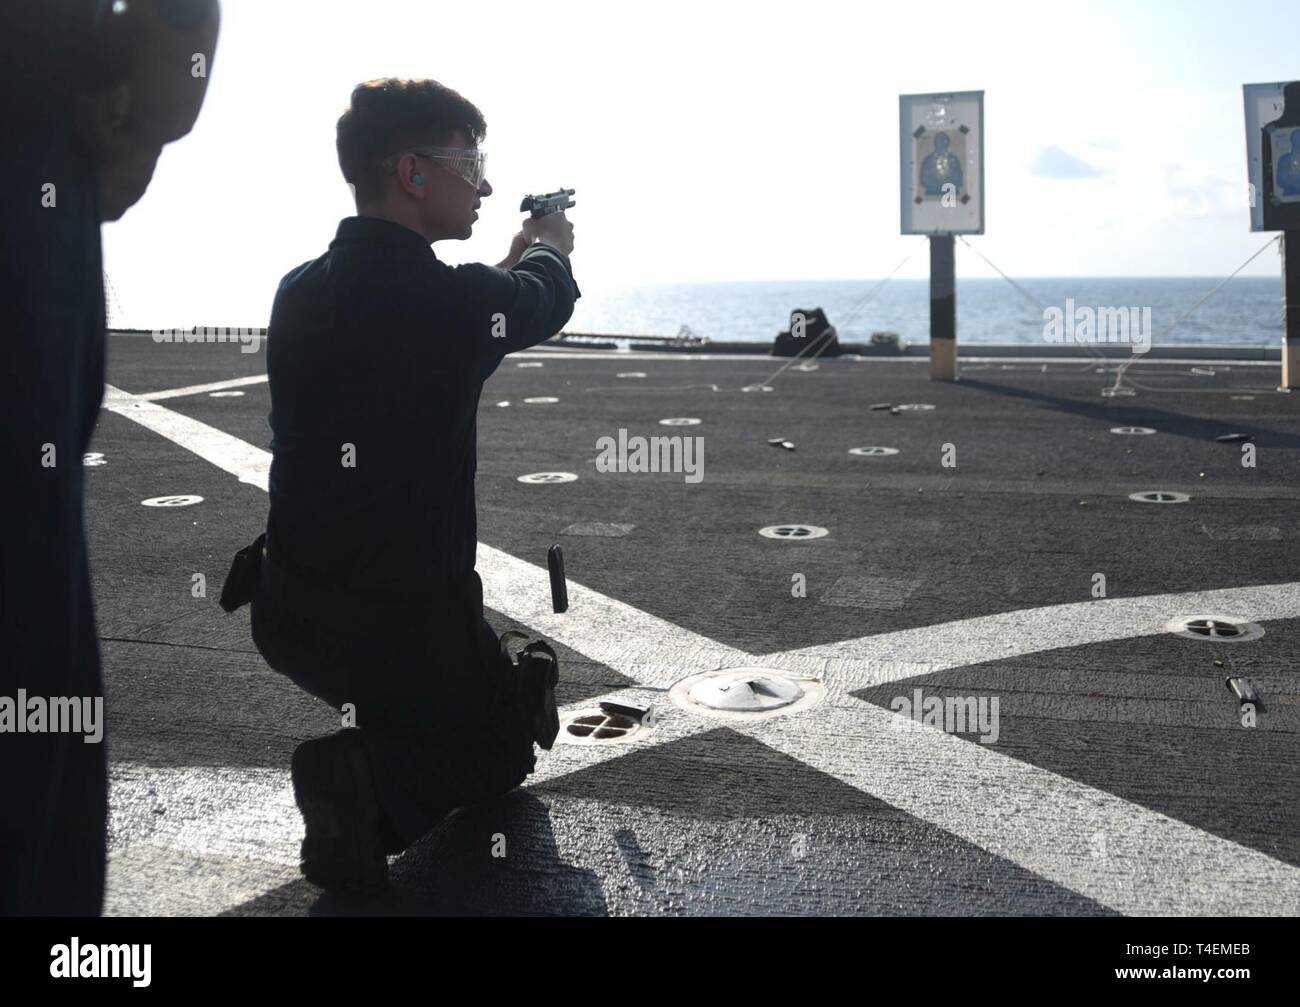 SOUTH CHINA SEA (April 4, 2019) - Mass Communication Specialist 3rd Class Ethan Carter, from Augusta, Ga., unloads an M9 pistol during a gun shoot aboard U.S. 7th Fleet flagship USS Blue Ridge (LCC 19). Blue Ridge is the oldest operational ship in the Navy and, as 7th Fleet command ship, actively works to foster relationships with allies and partners in the Indo-Pacific Region. - Stock Image